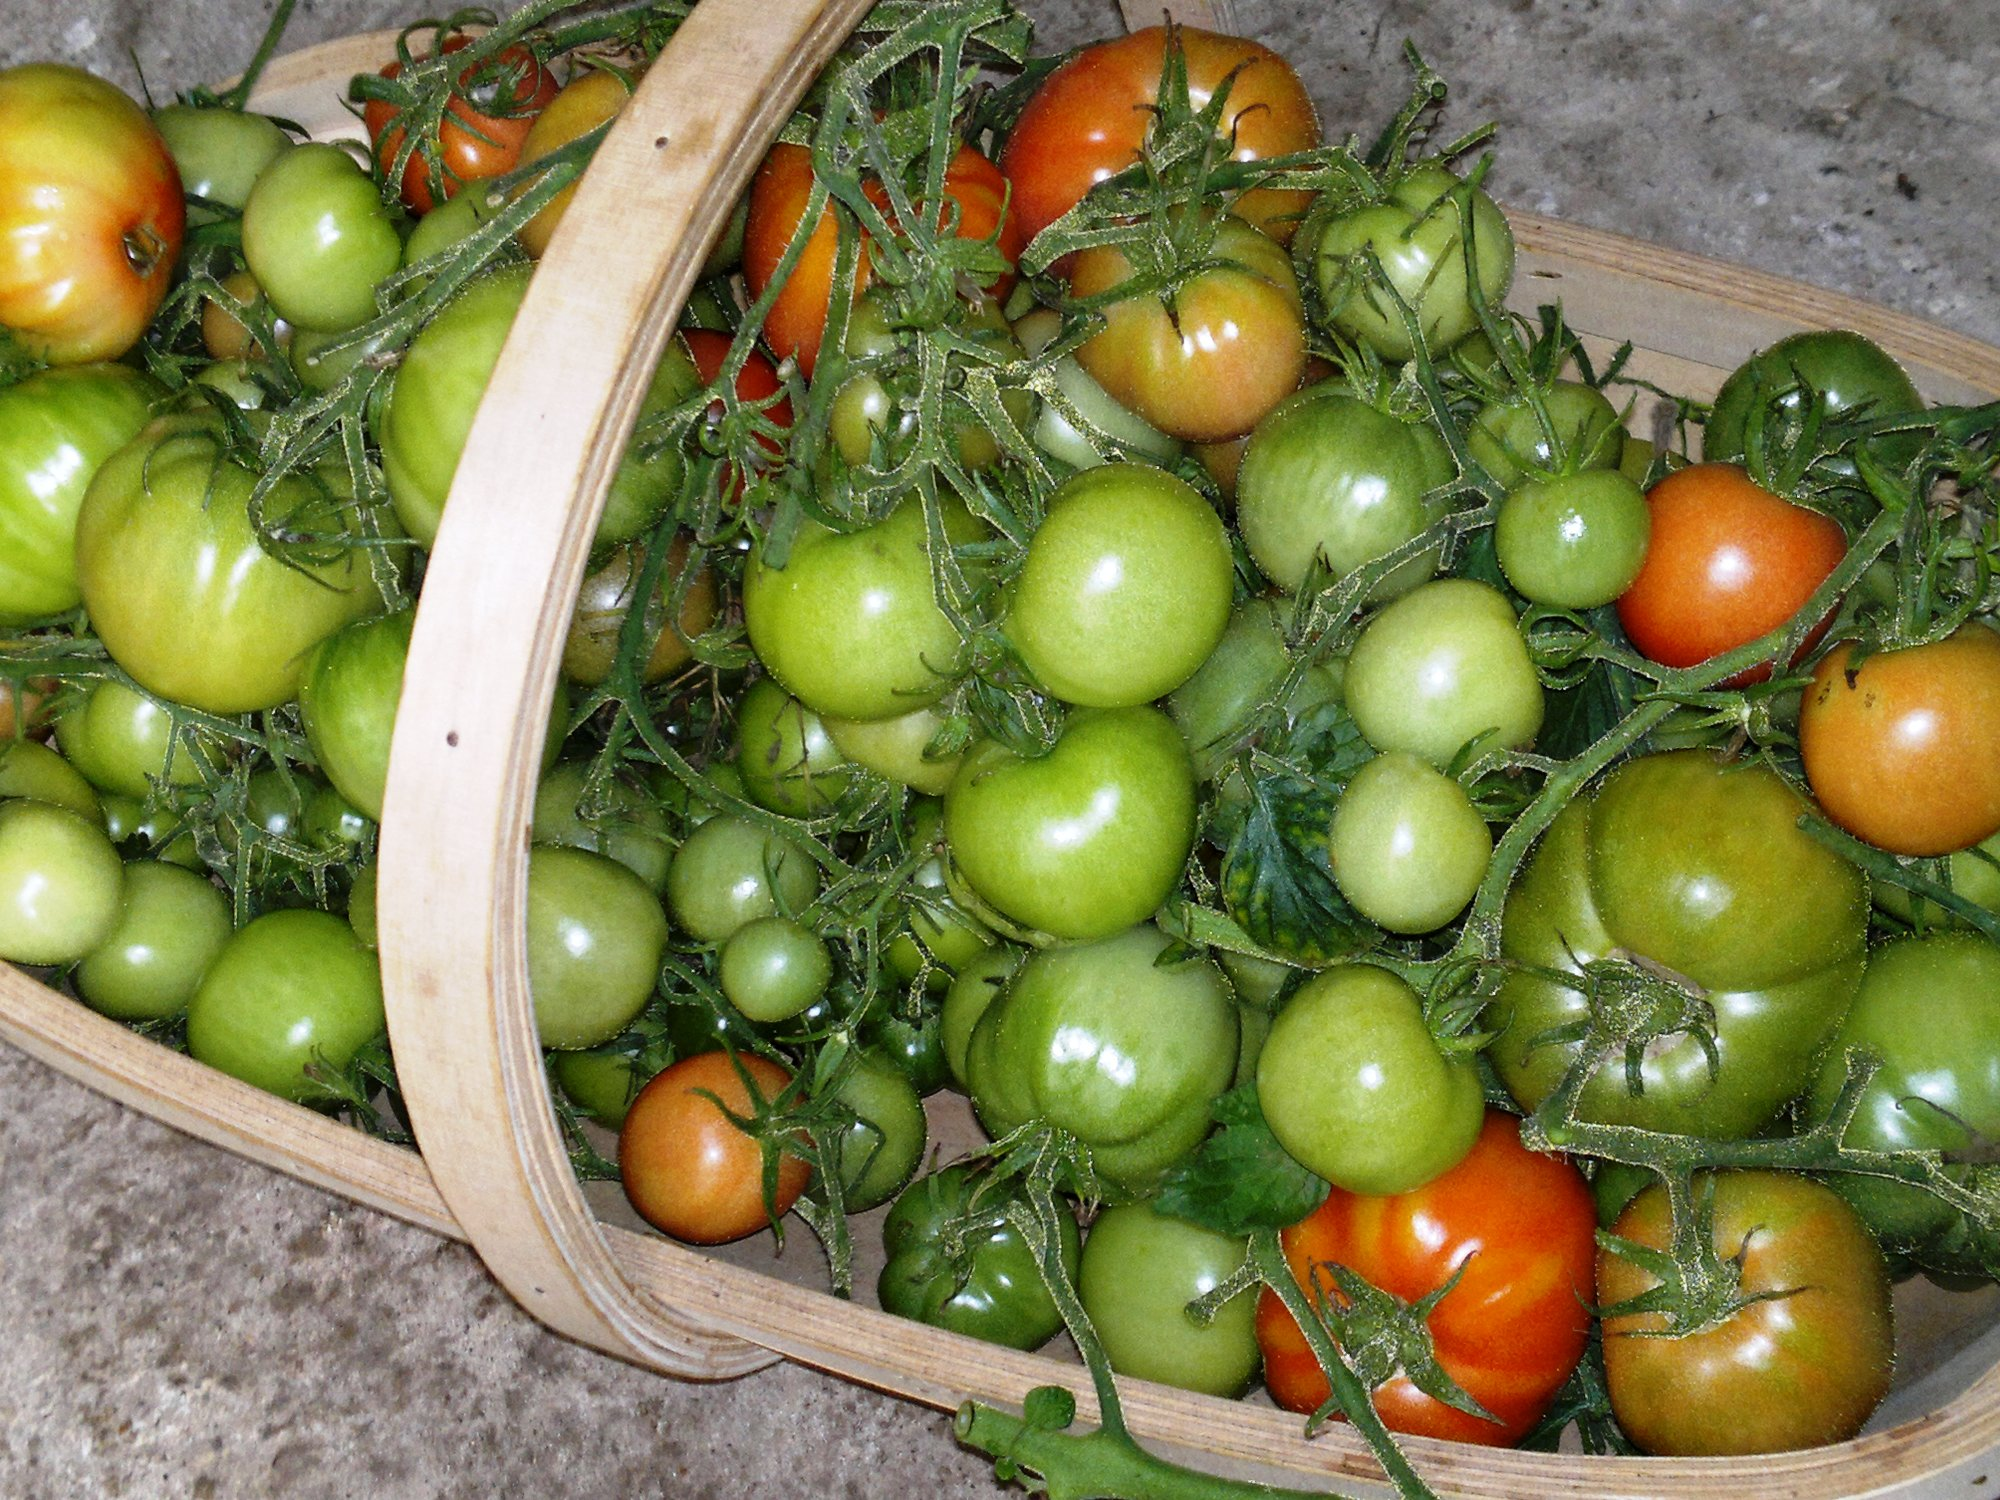 A trug of rescued tomatoes, all in good condition but varying degrees of ripeness